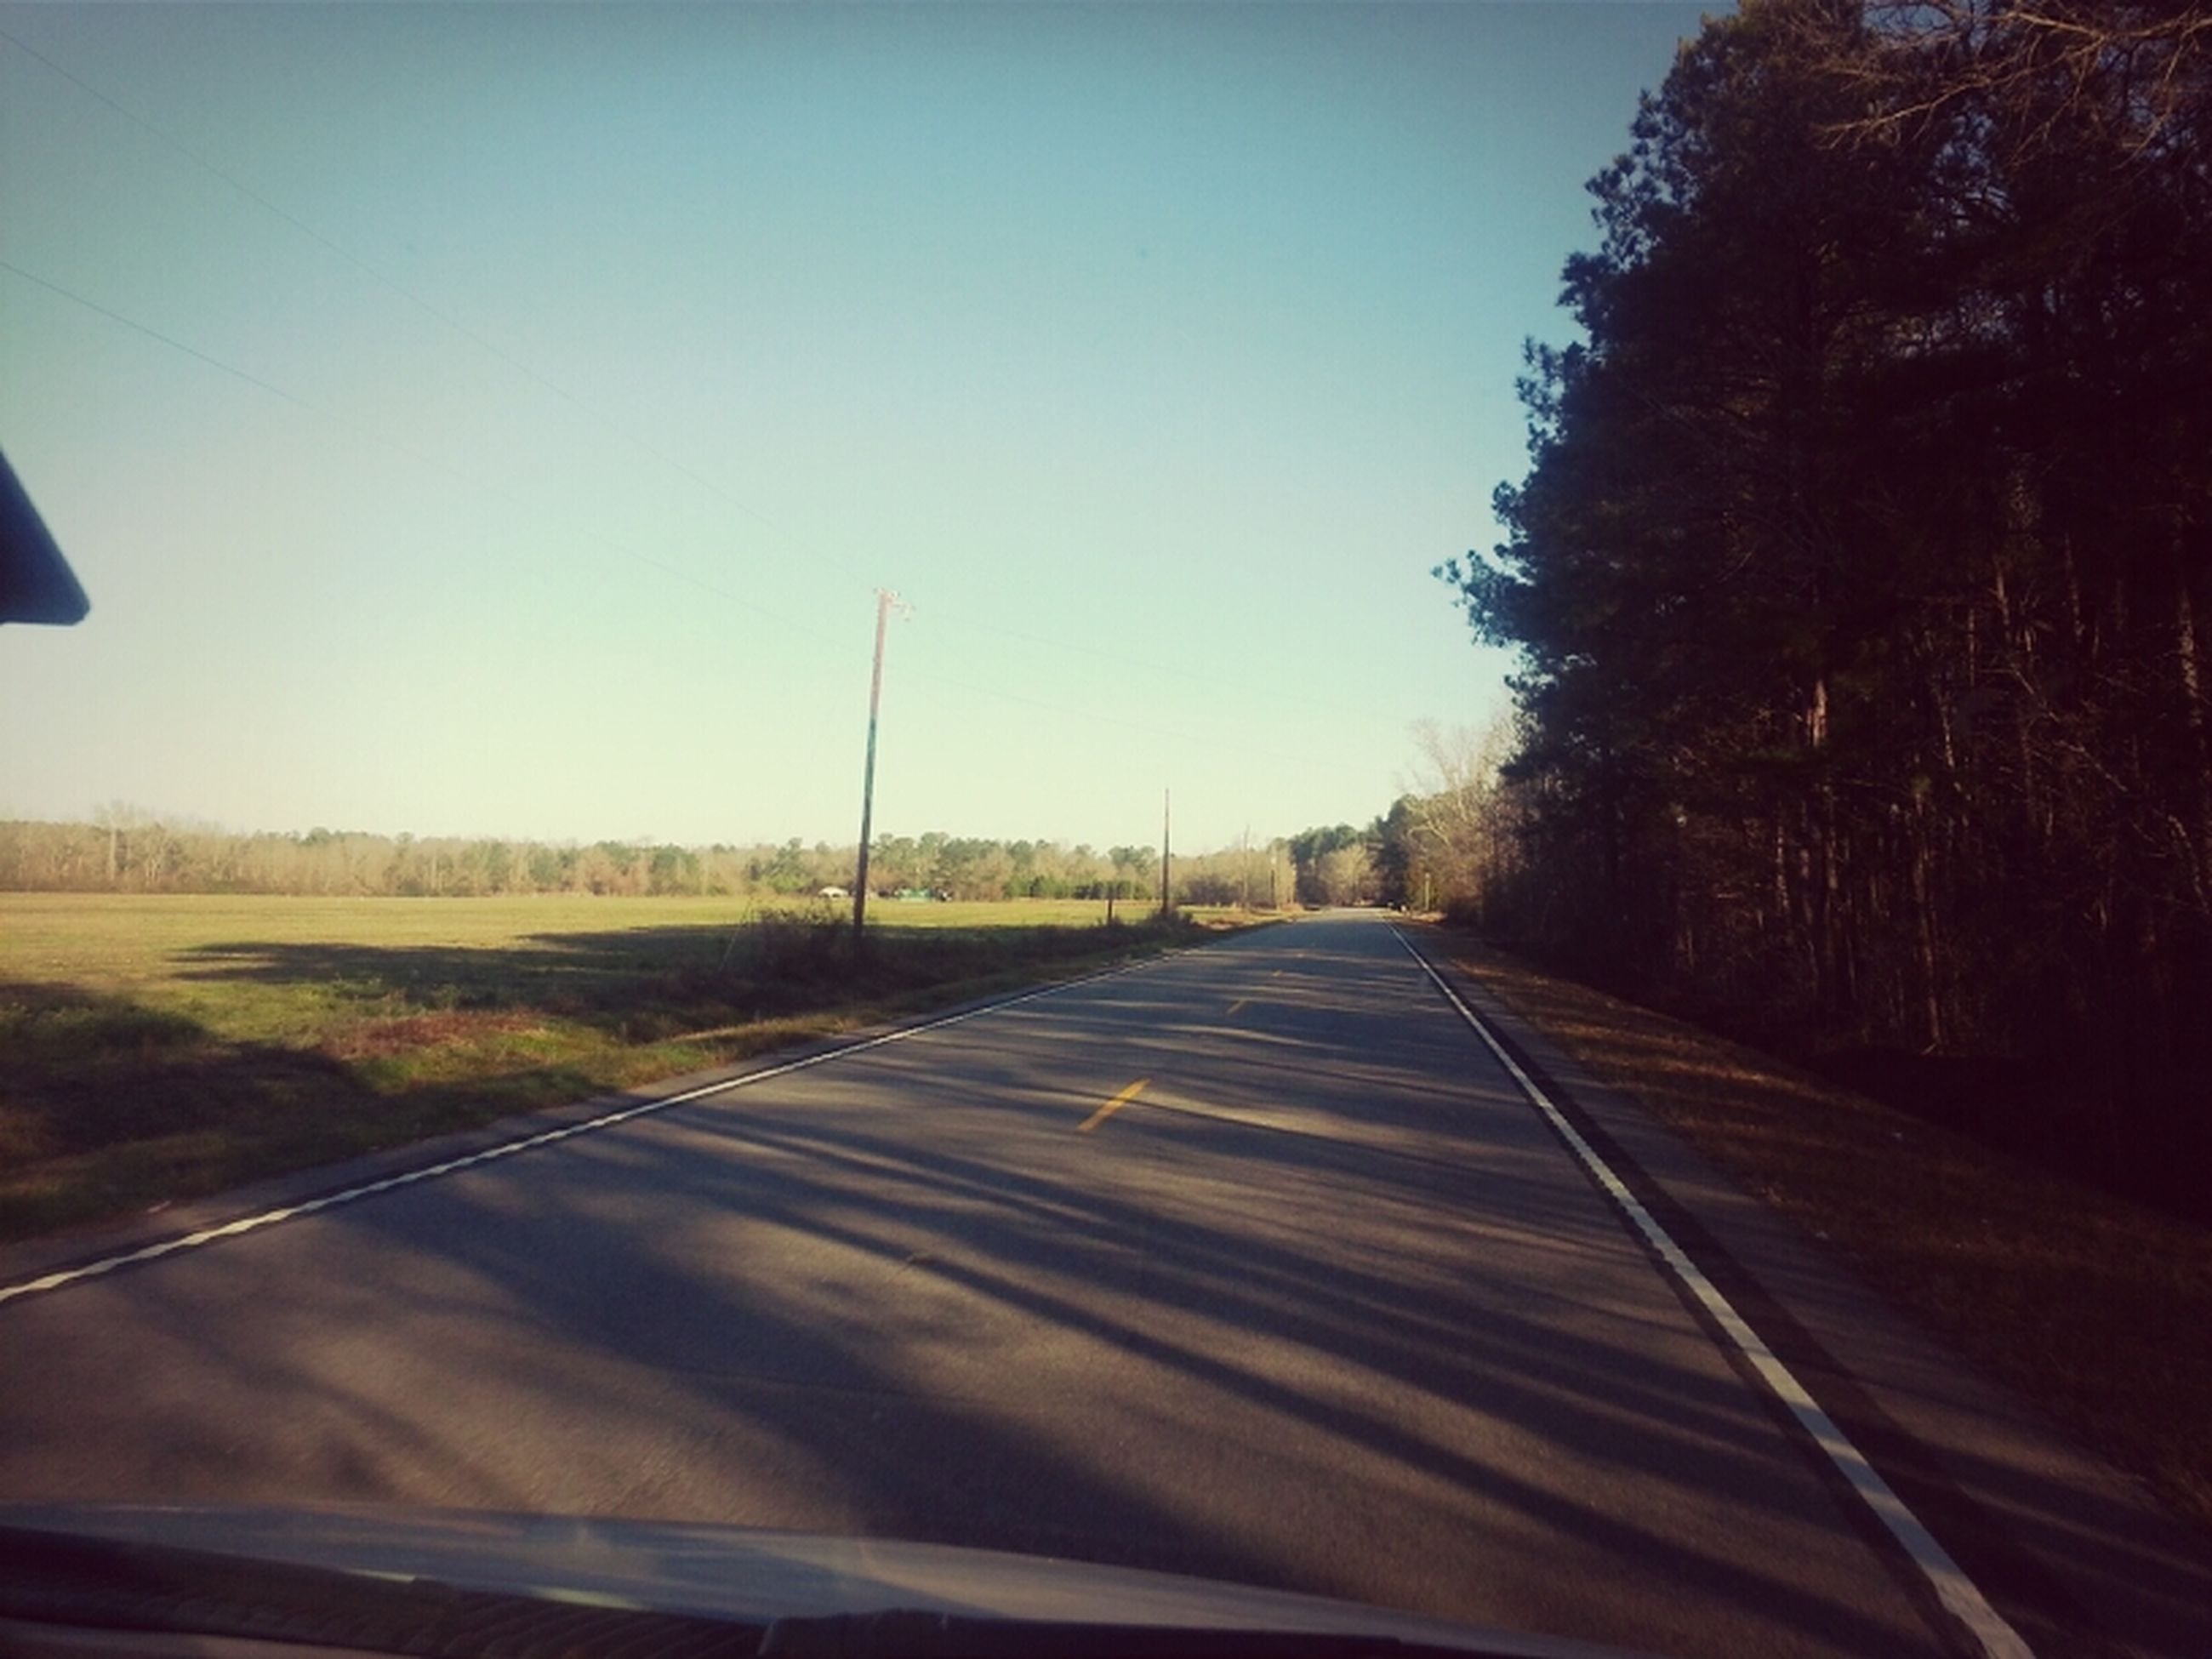 the way forward, clear sky, diminishing perspective, road, transportation, vanishing point, copy space, empty, tree, country road, tranquil scene, tranquility, landscape, long, field, empty road, road marking, nature, sky, blue